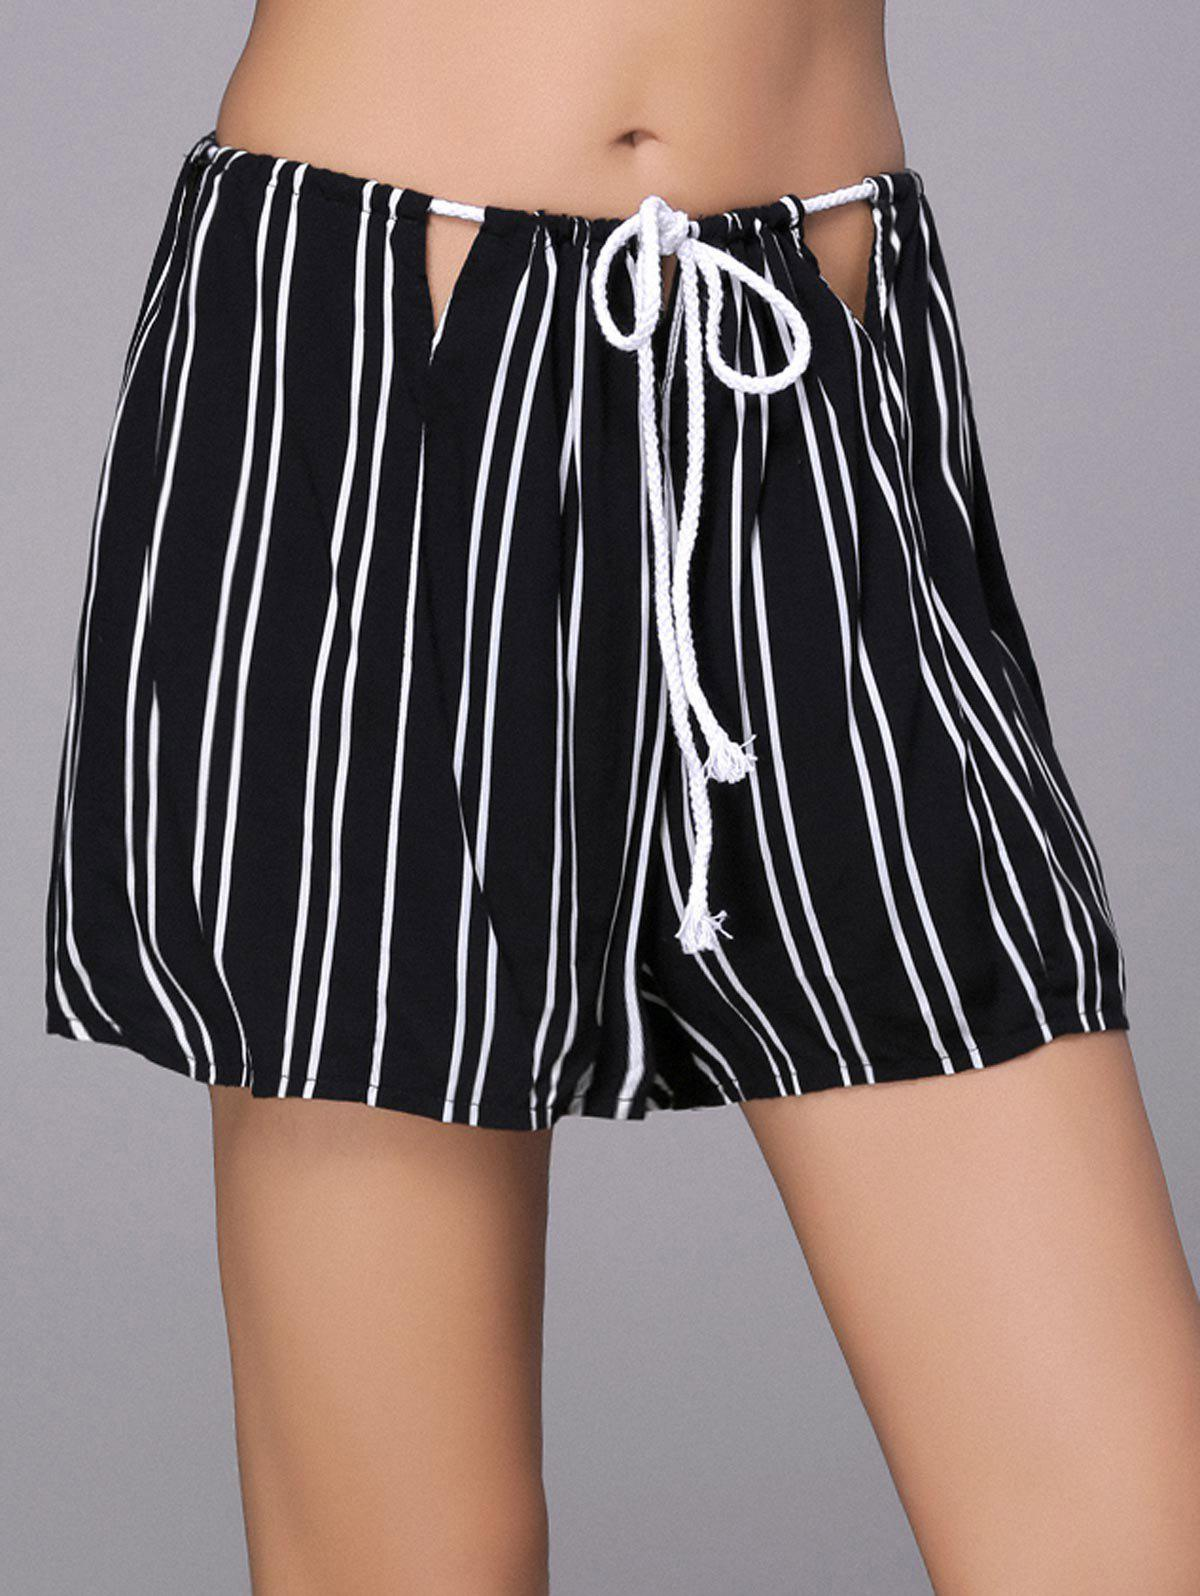 Stylish Striped Loose Shorts For Women